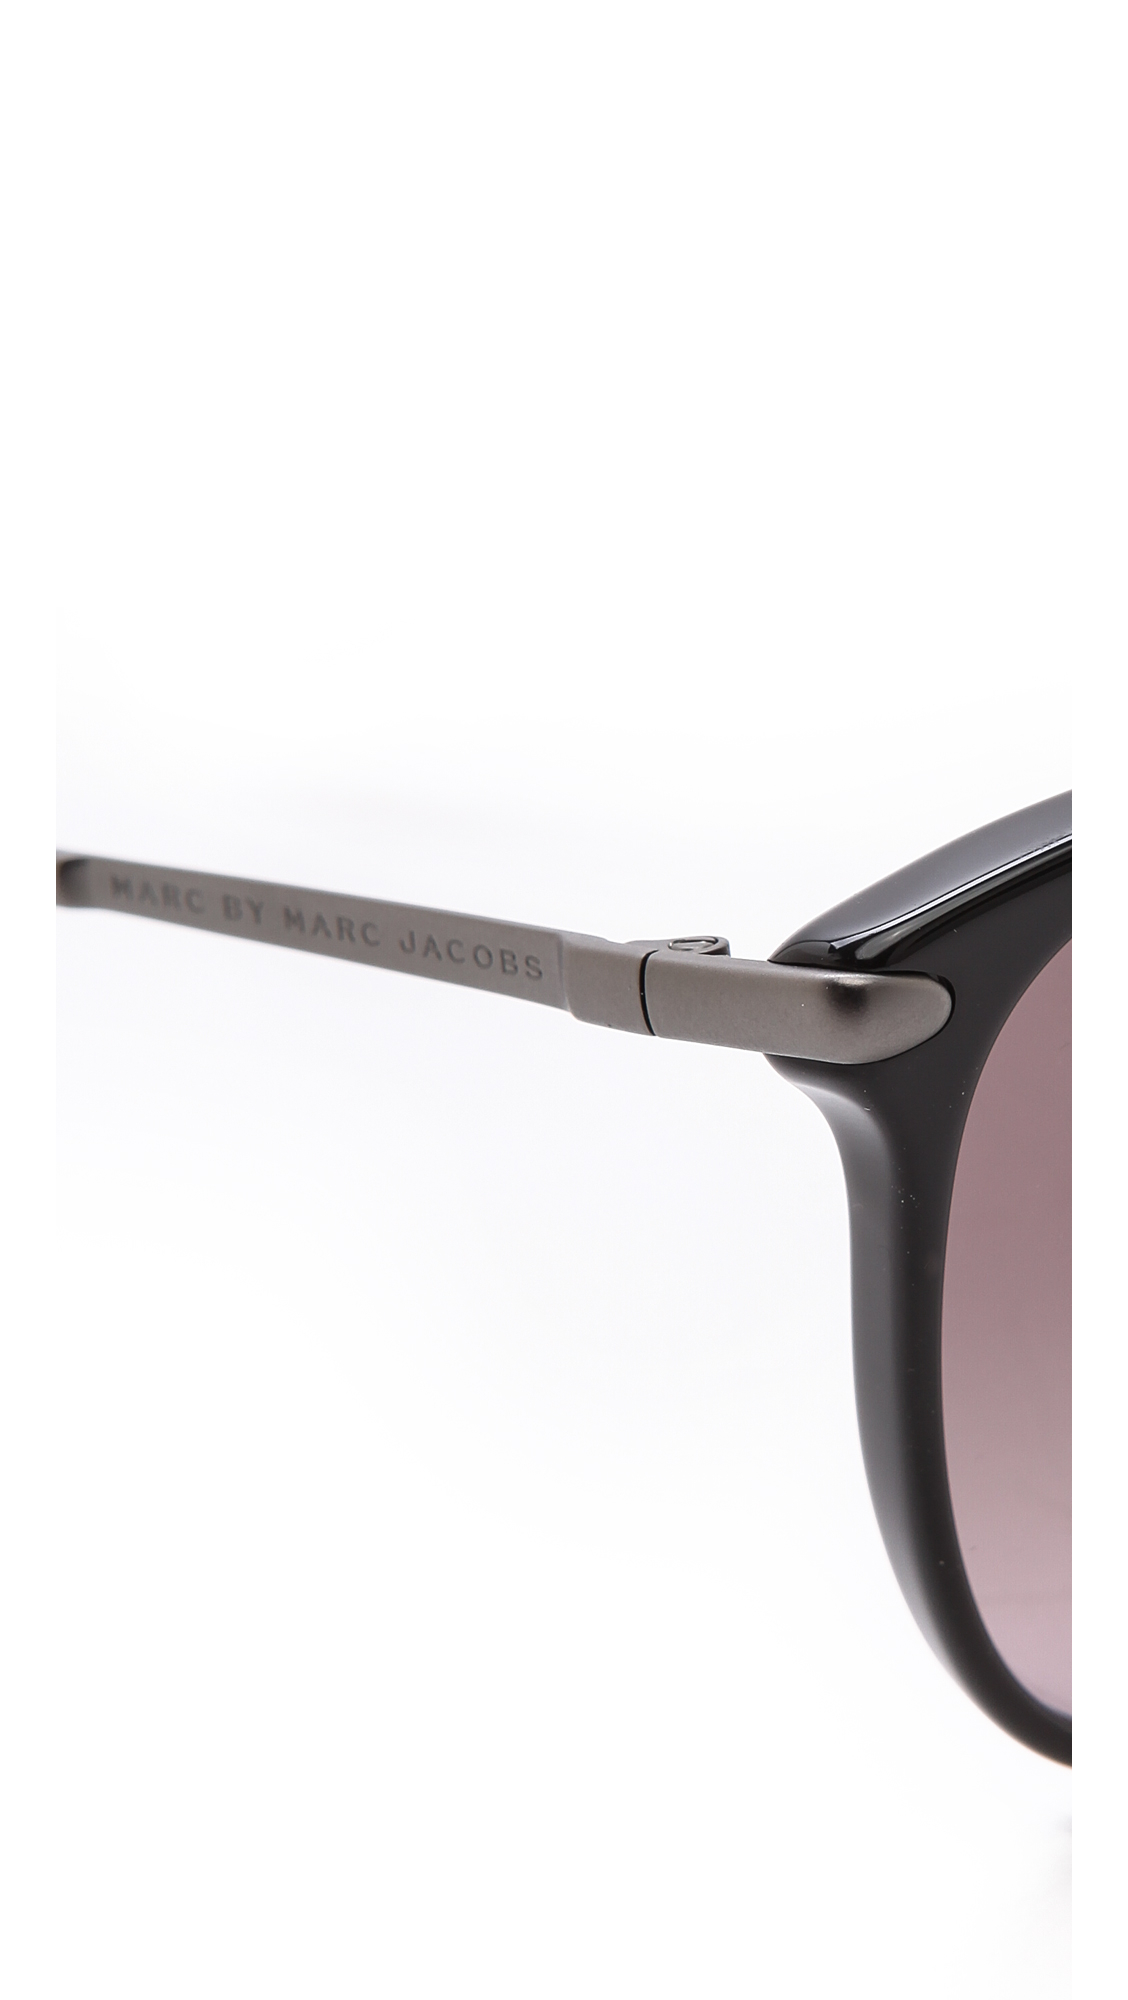 Marc By Marc Jacobs Thin Frame Sunglasses Light Bluegrey